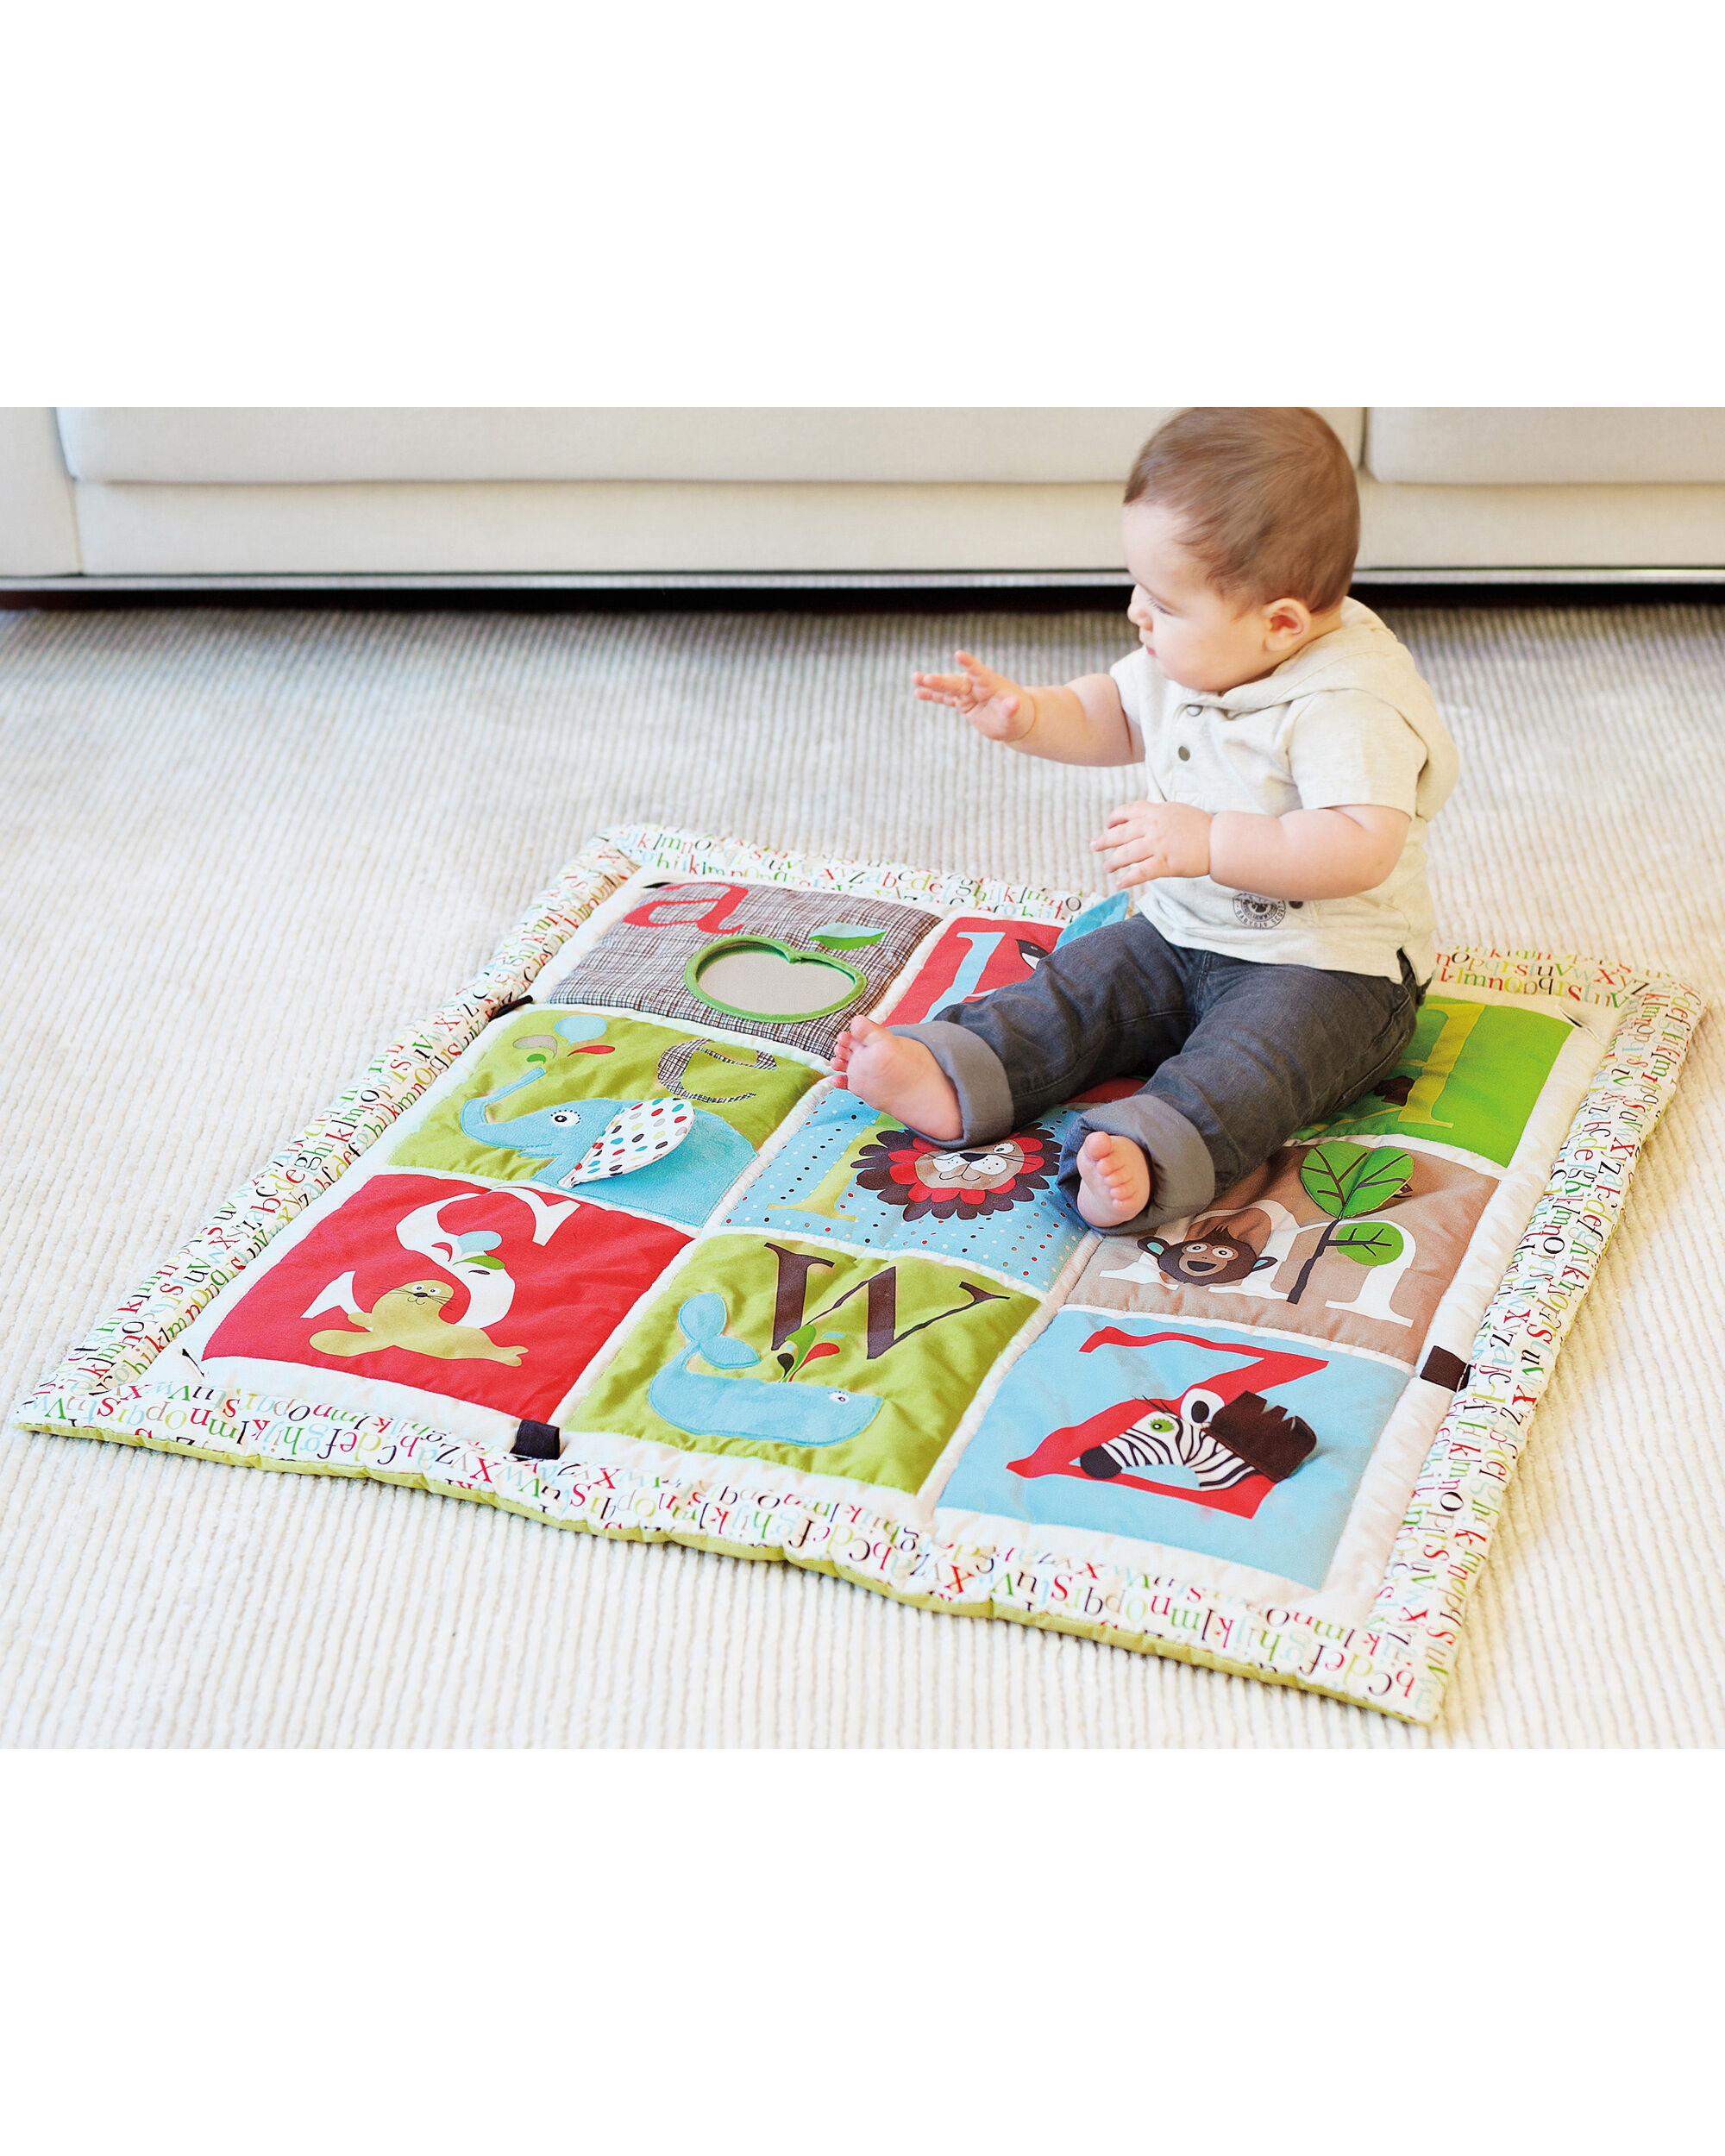 model large amazon additional folding panel gupamiga care slip for mat extra foam waterproof xpe dp babies classic only floor mats baby playpen playmat the com reversible play